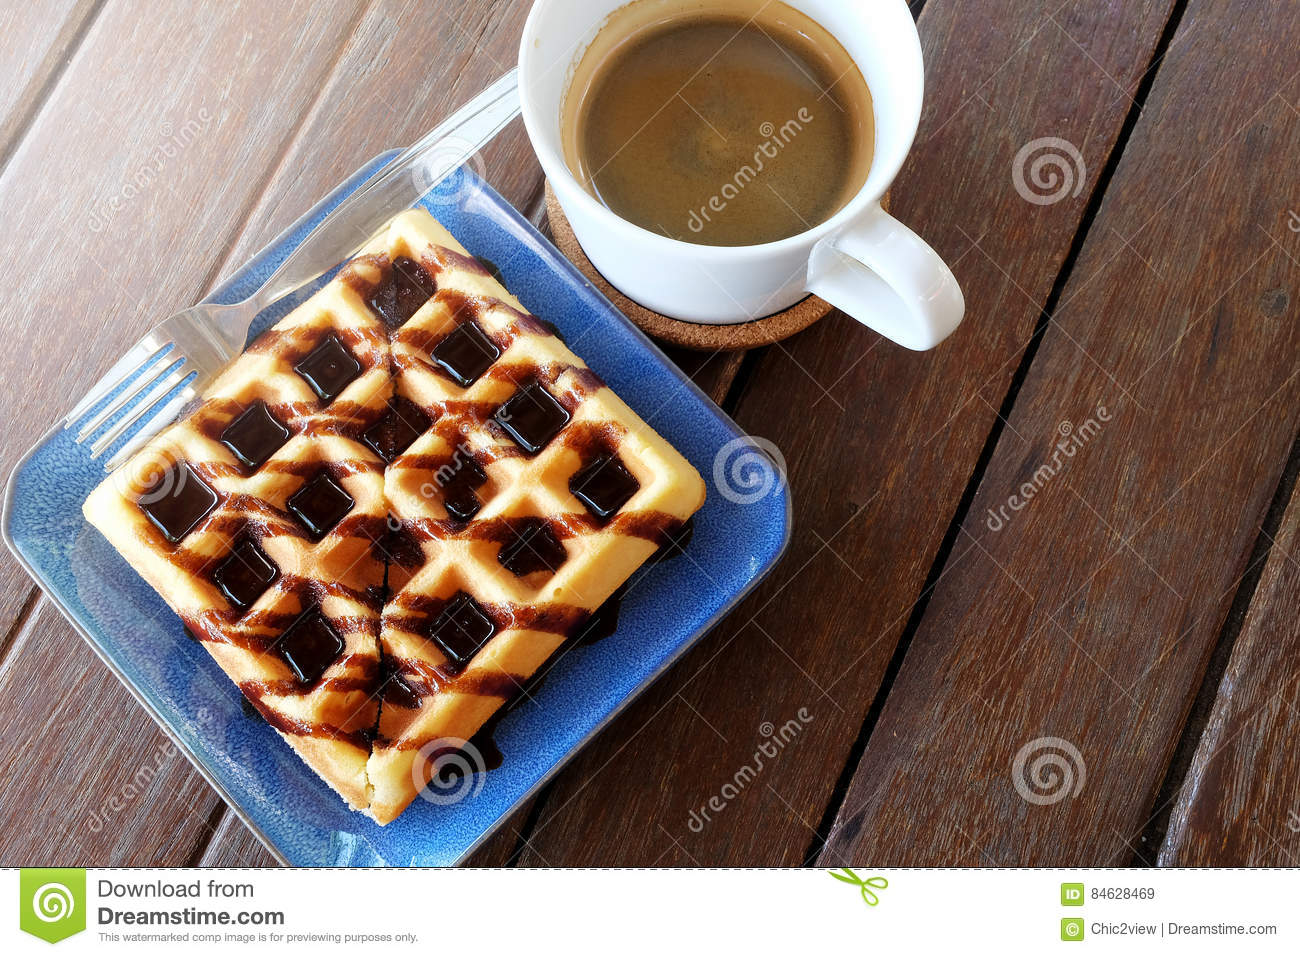 Hot coffee and Waffles with chocolate sauce on wooden table background.